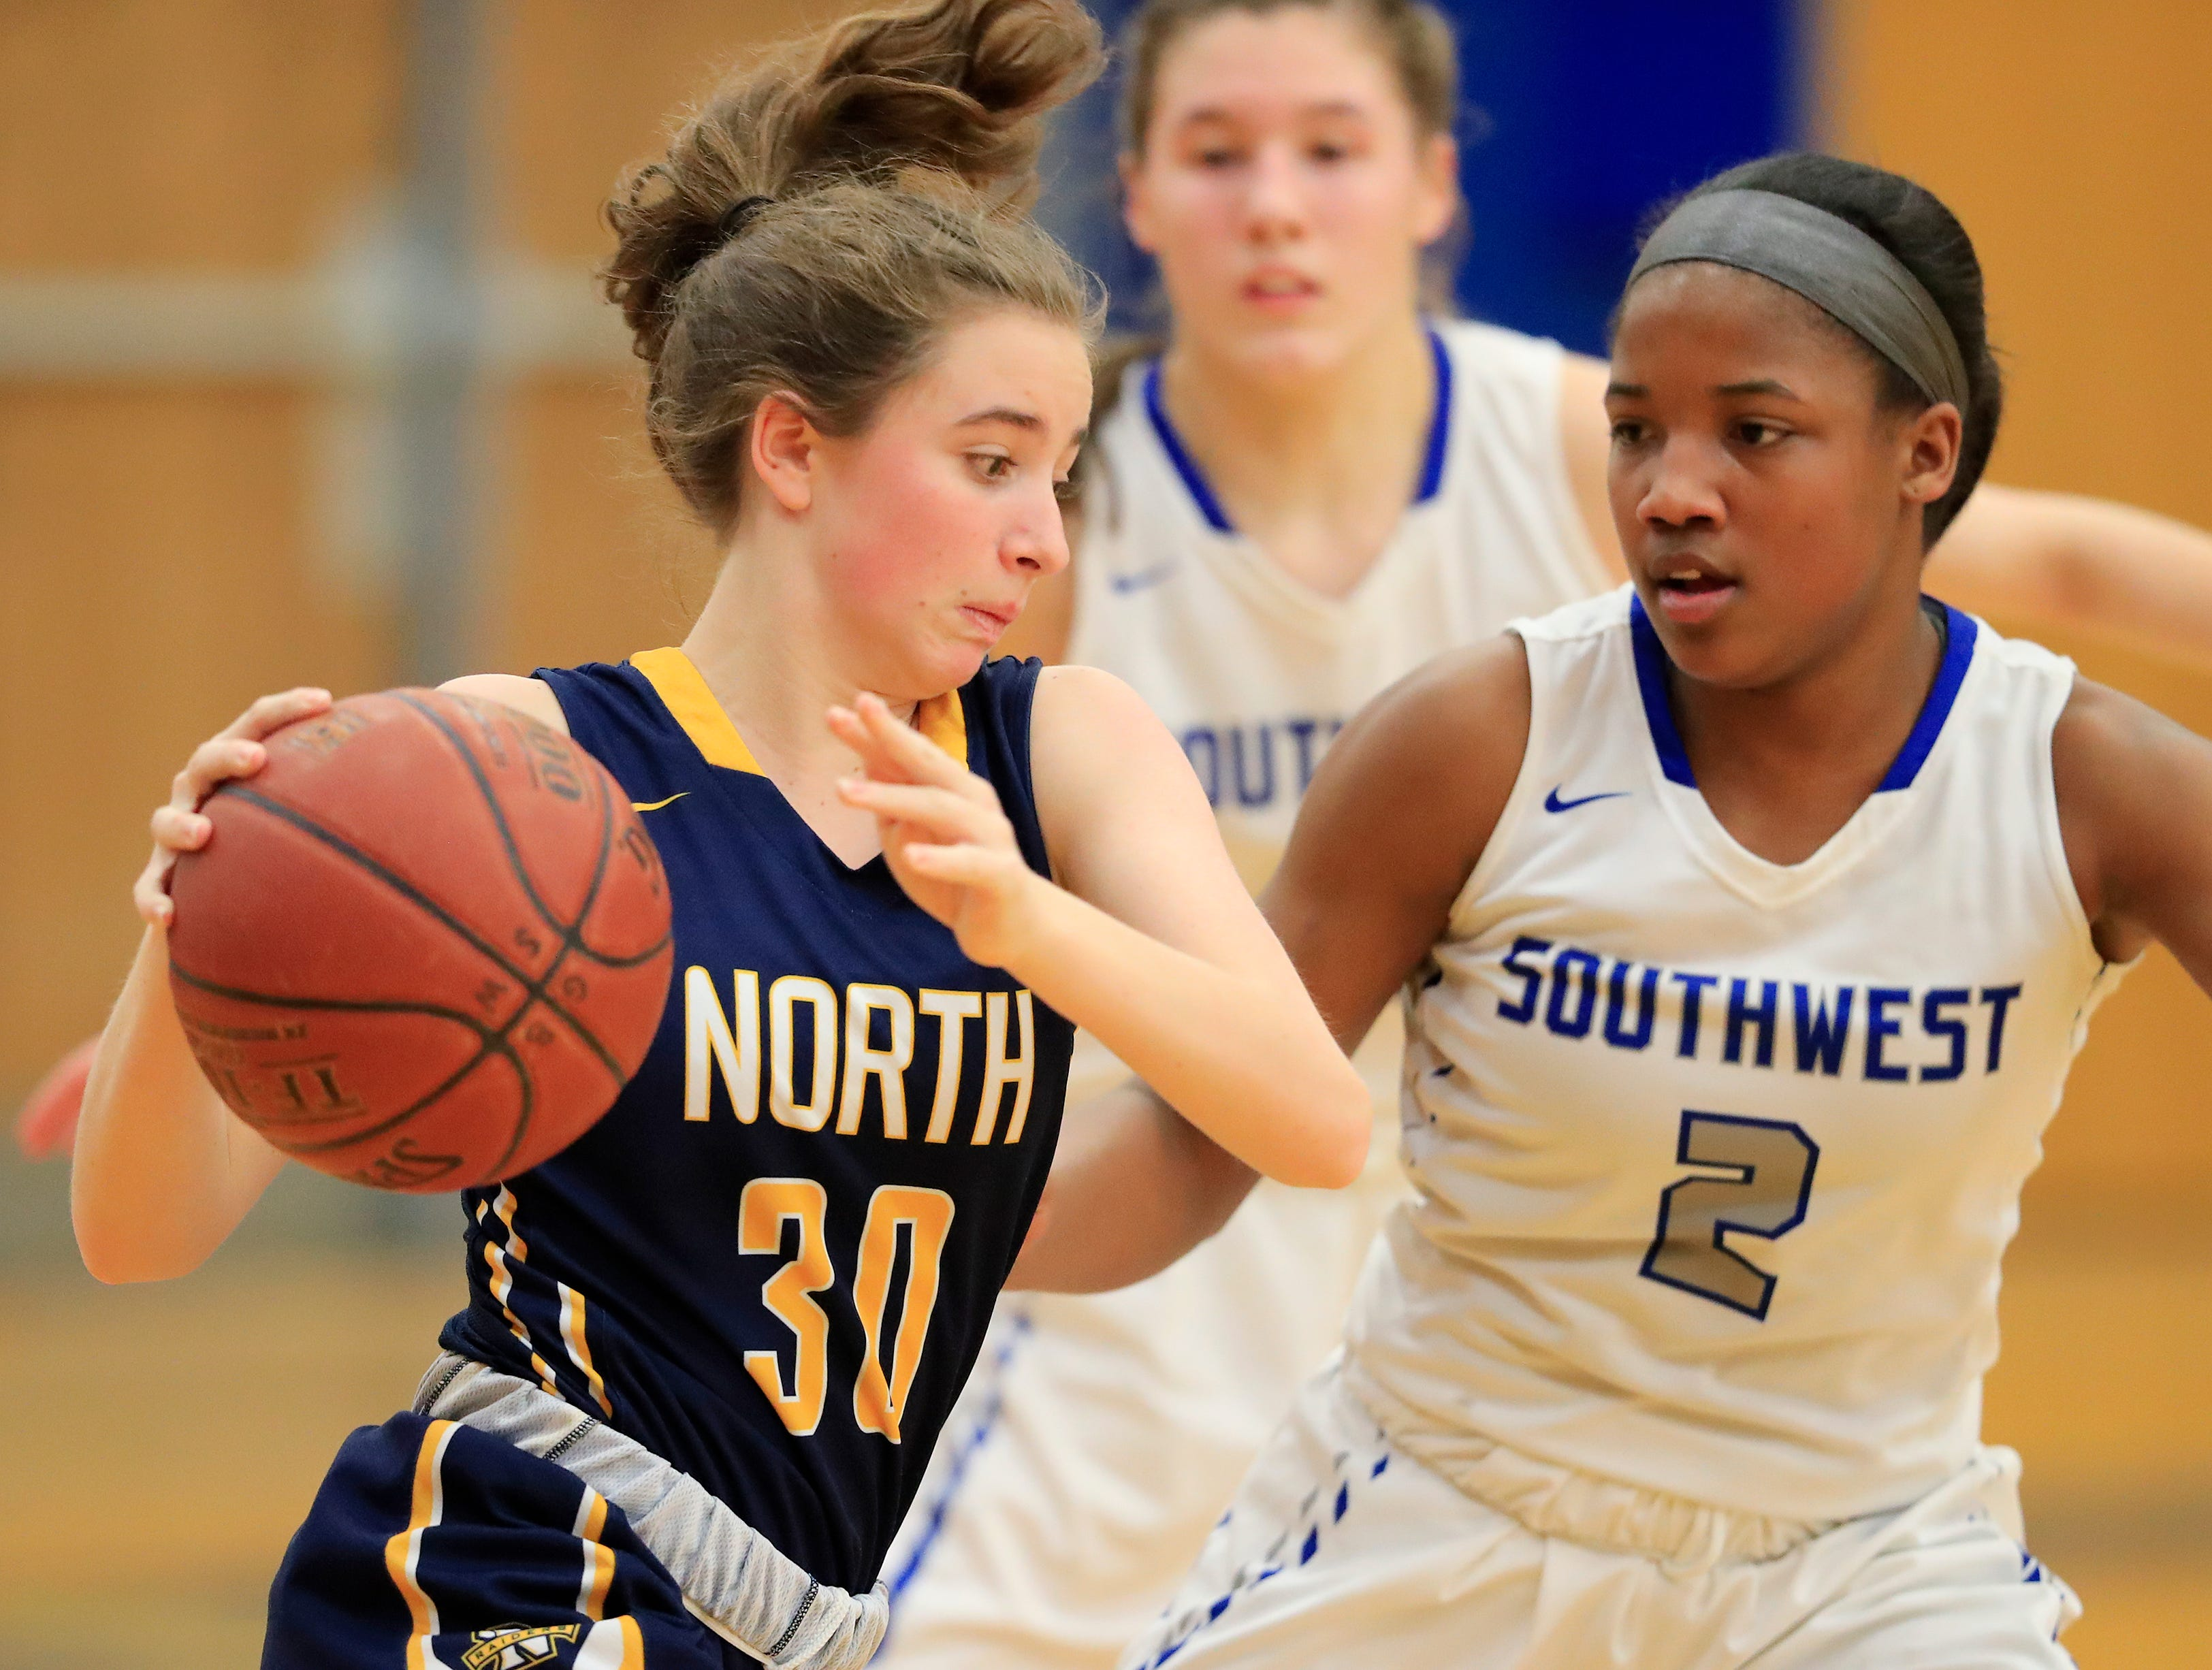 Sheboygan North's Karsyn Bichler (30) dribbles against Green Bay Southwest's Jaddan Simmons (2) in a girls basketball game at Southwest High School on Tuesday, February 5, 2019 in Green Bay, Wis.